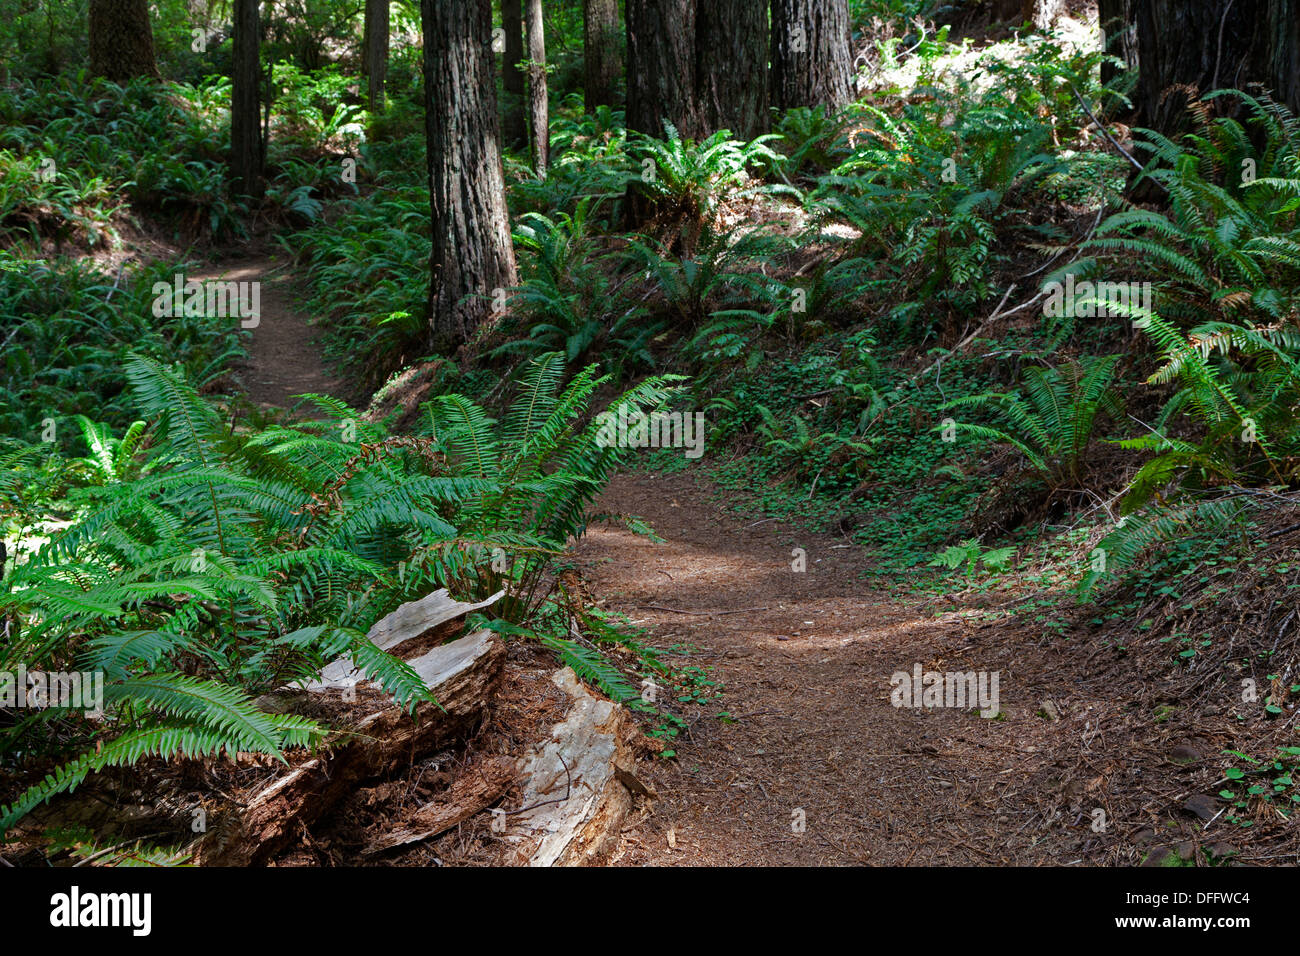 Redwoods, Douglas Fir, and ferns line the trail at Oregon Redwoods Trail in the Siskiyou National Forest near Brookings, Oregon. Stock Photo